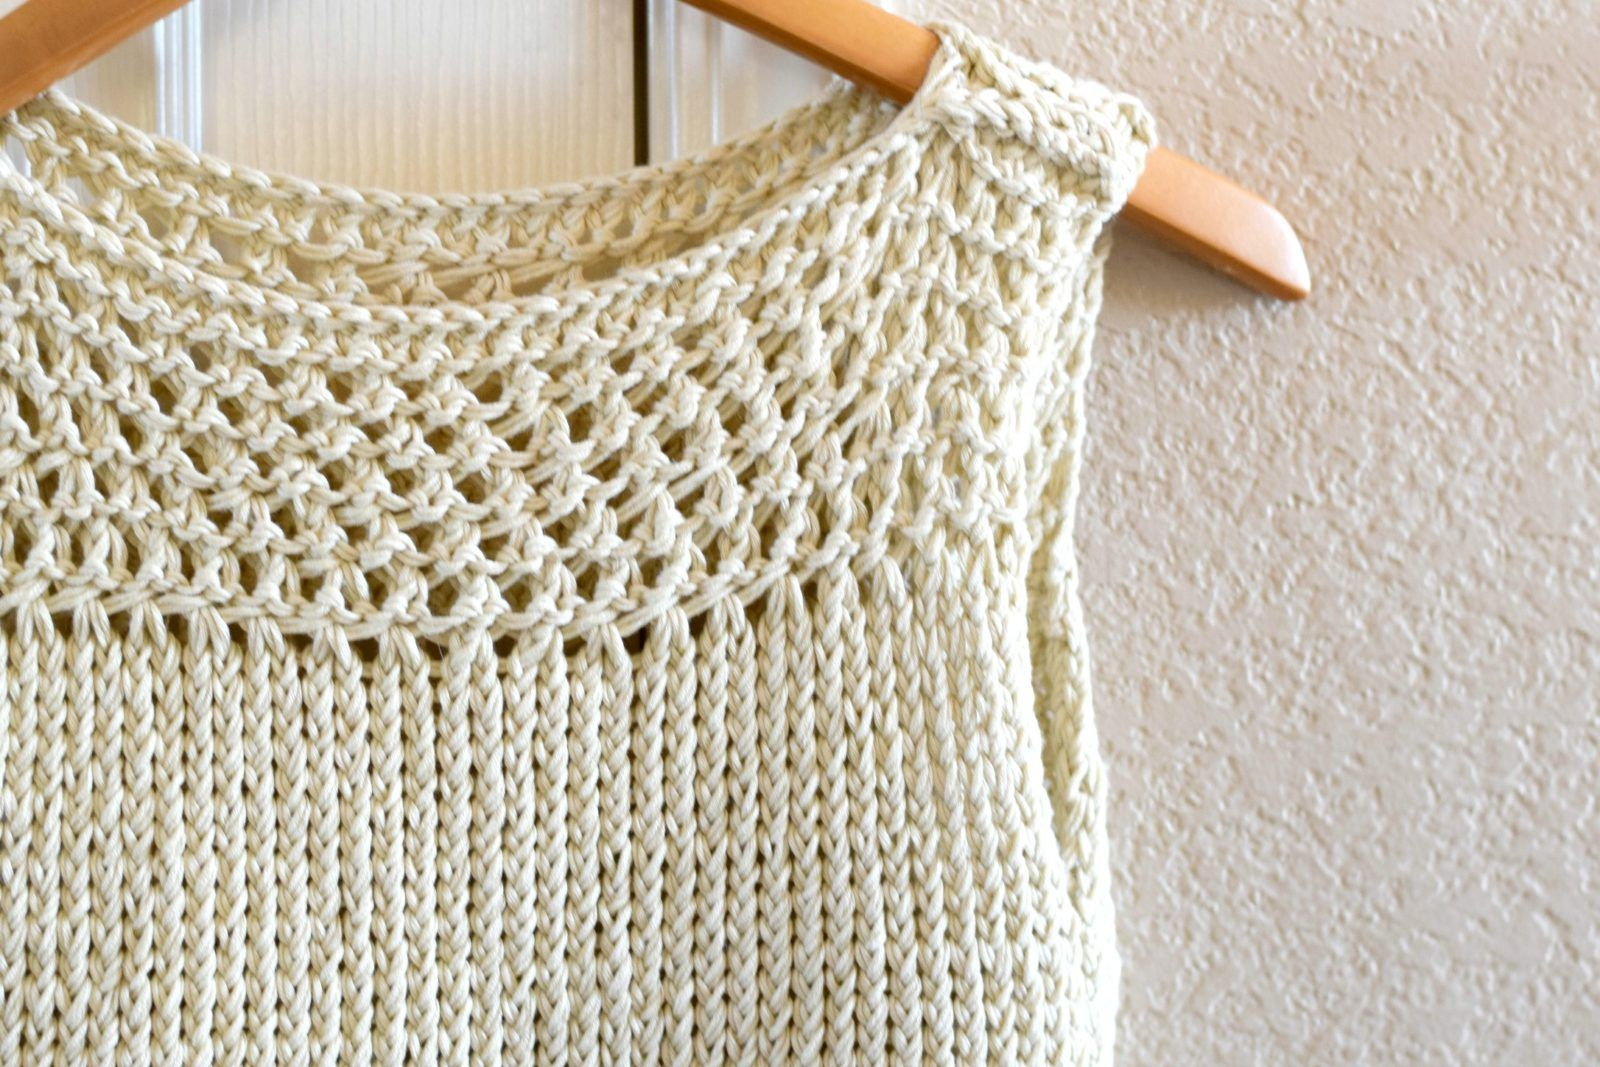 The contest for knitting Summer top